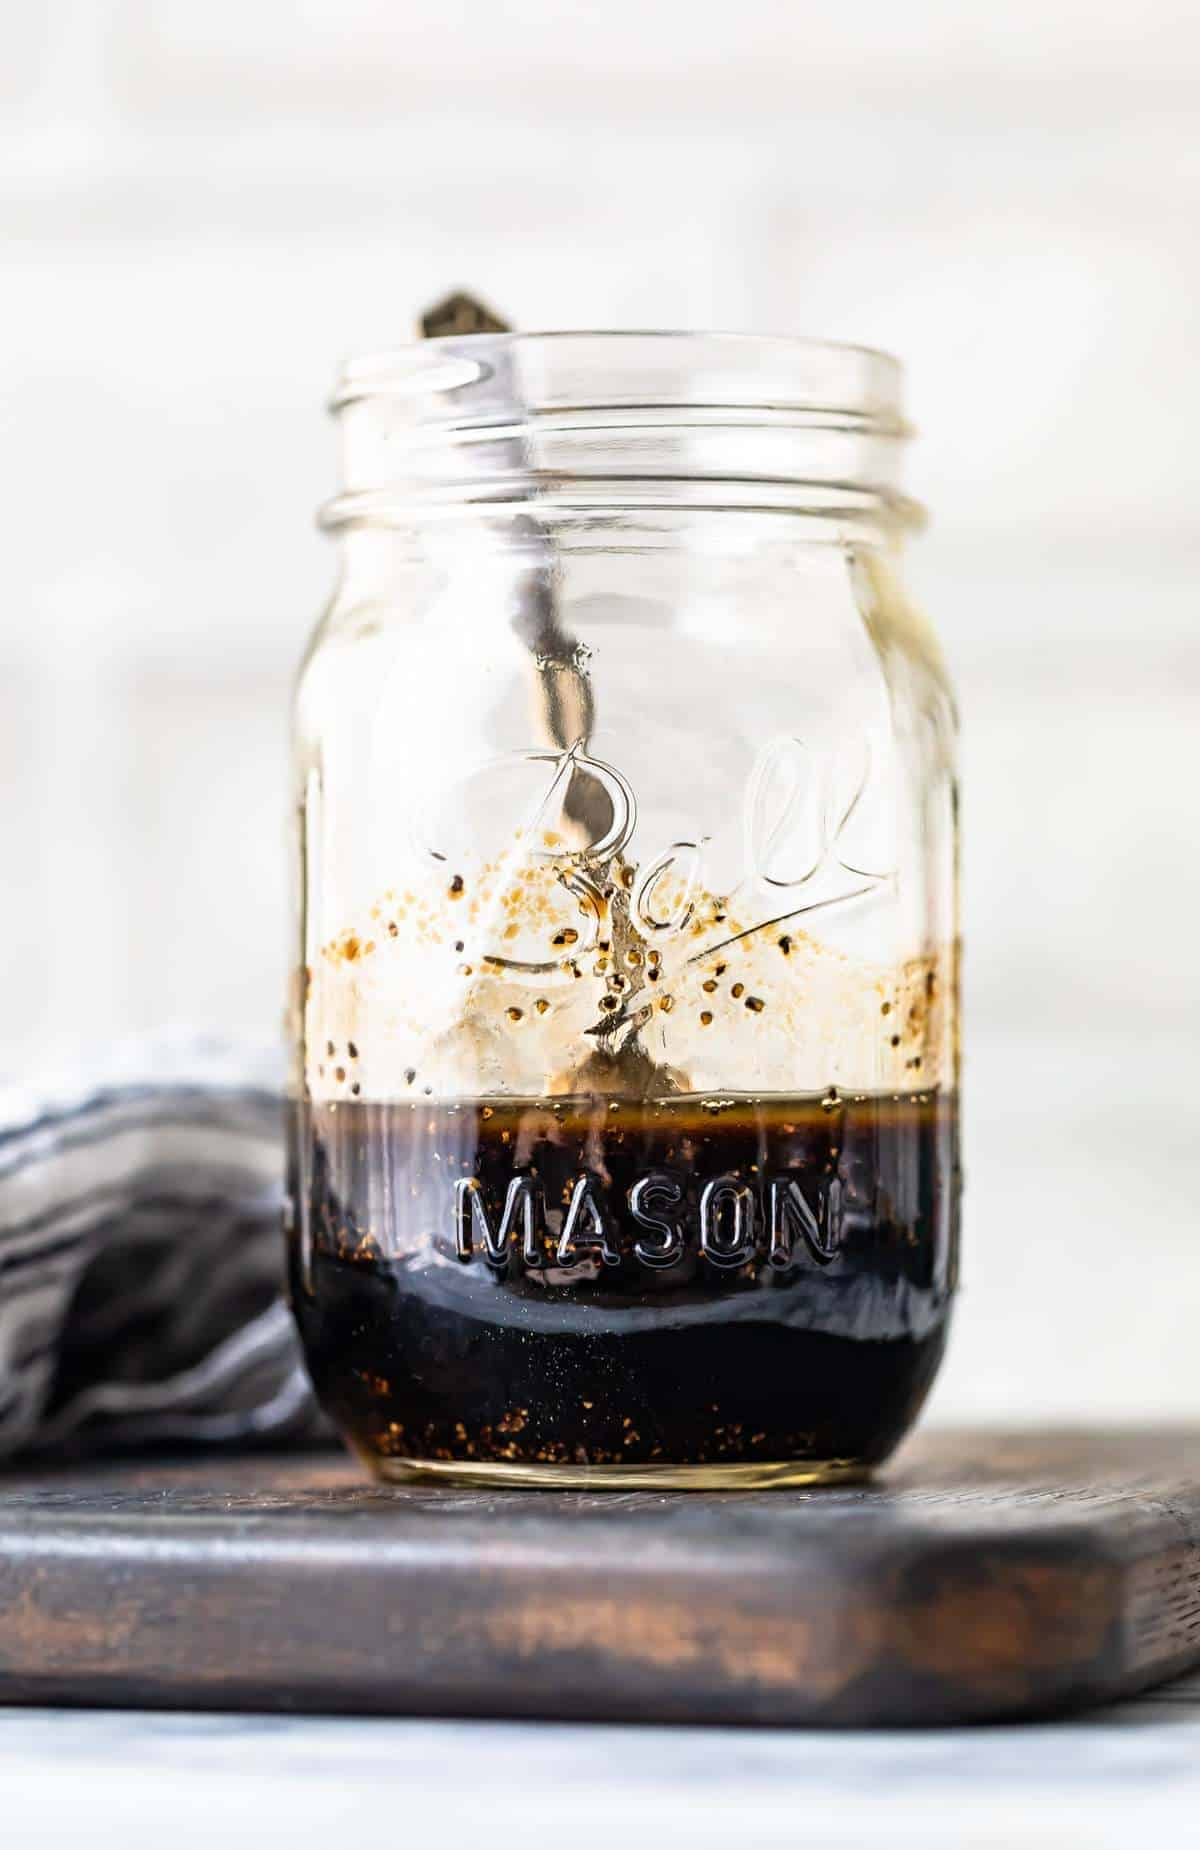 Balsamic Marinade for chicken in a jar